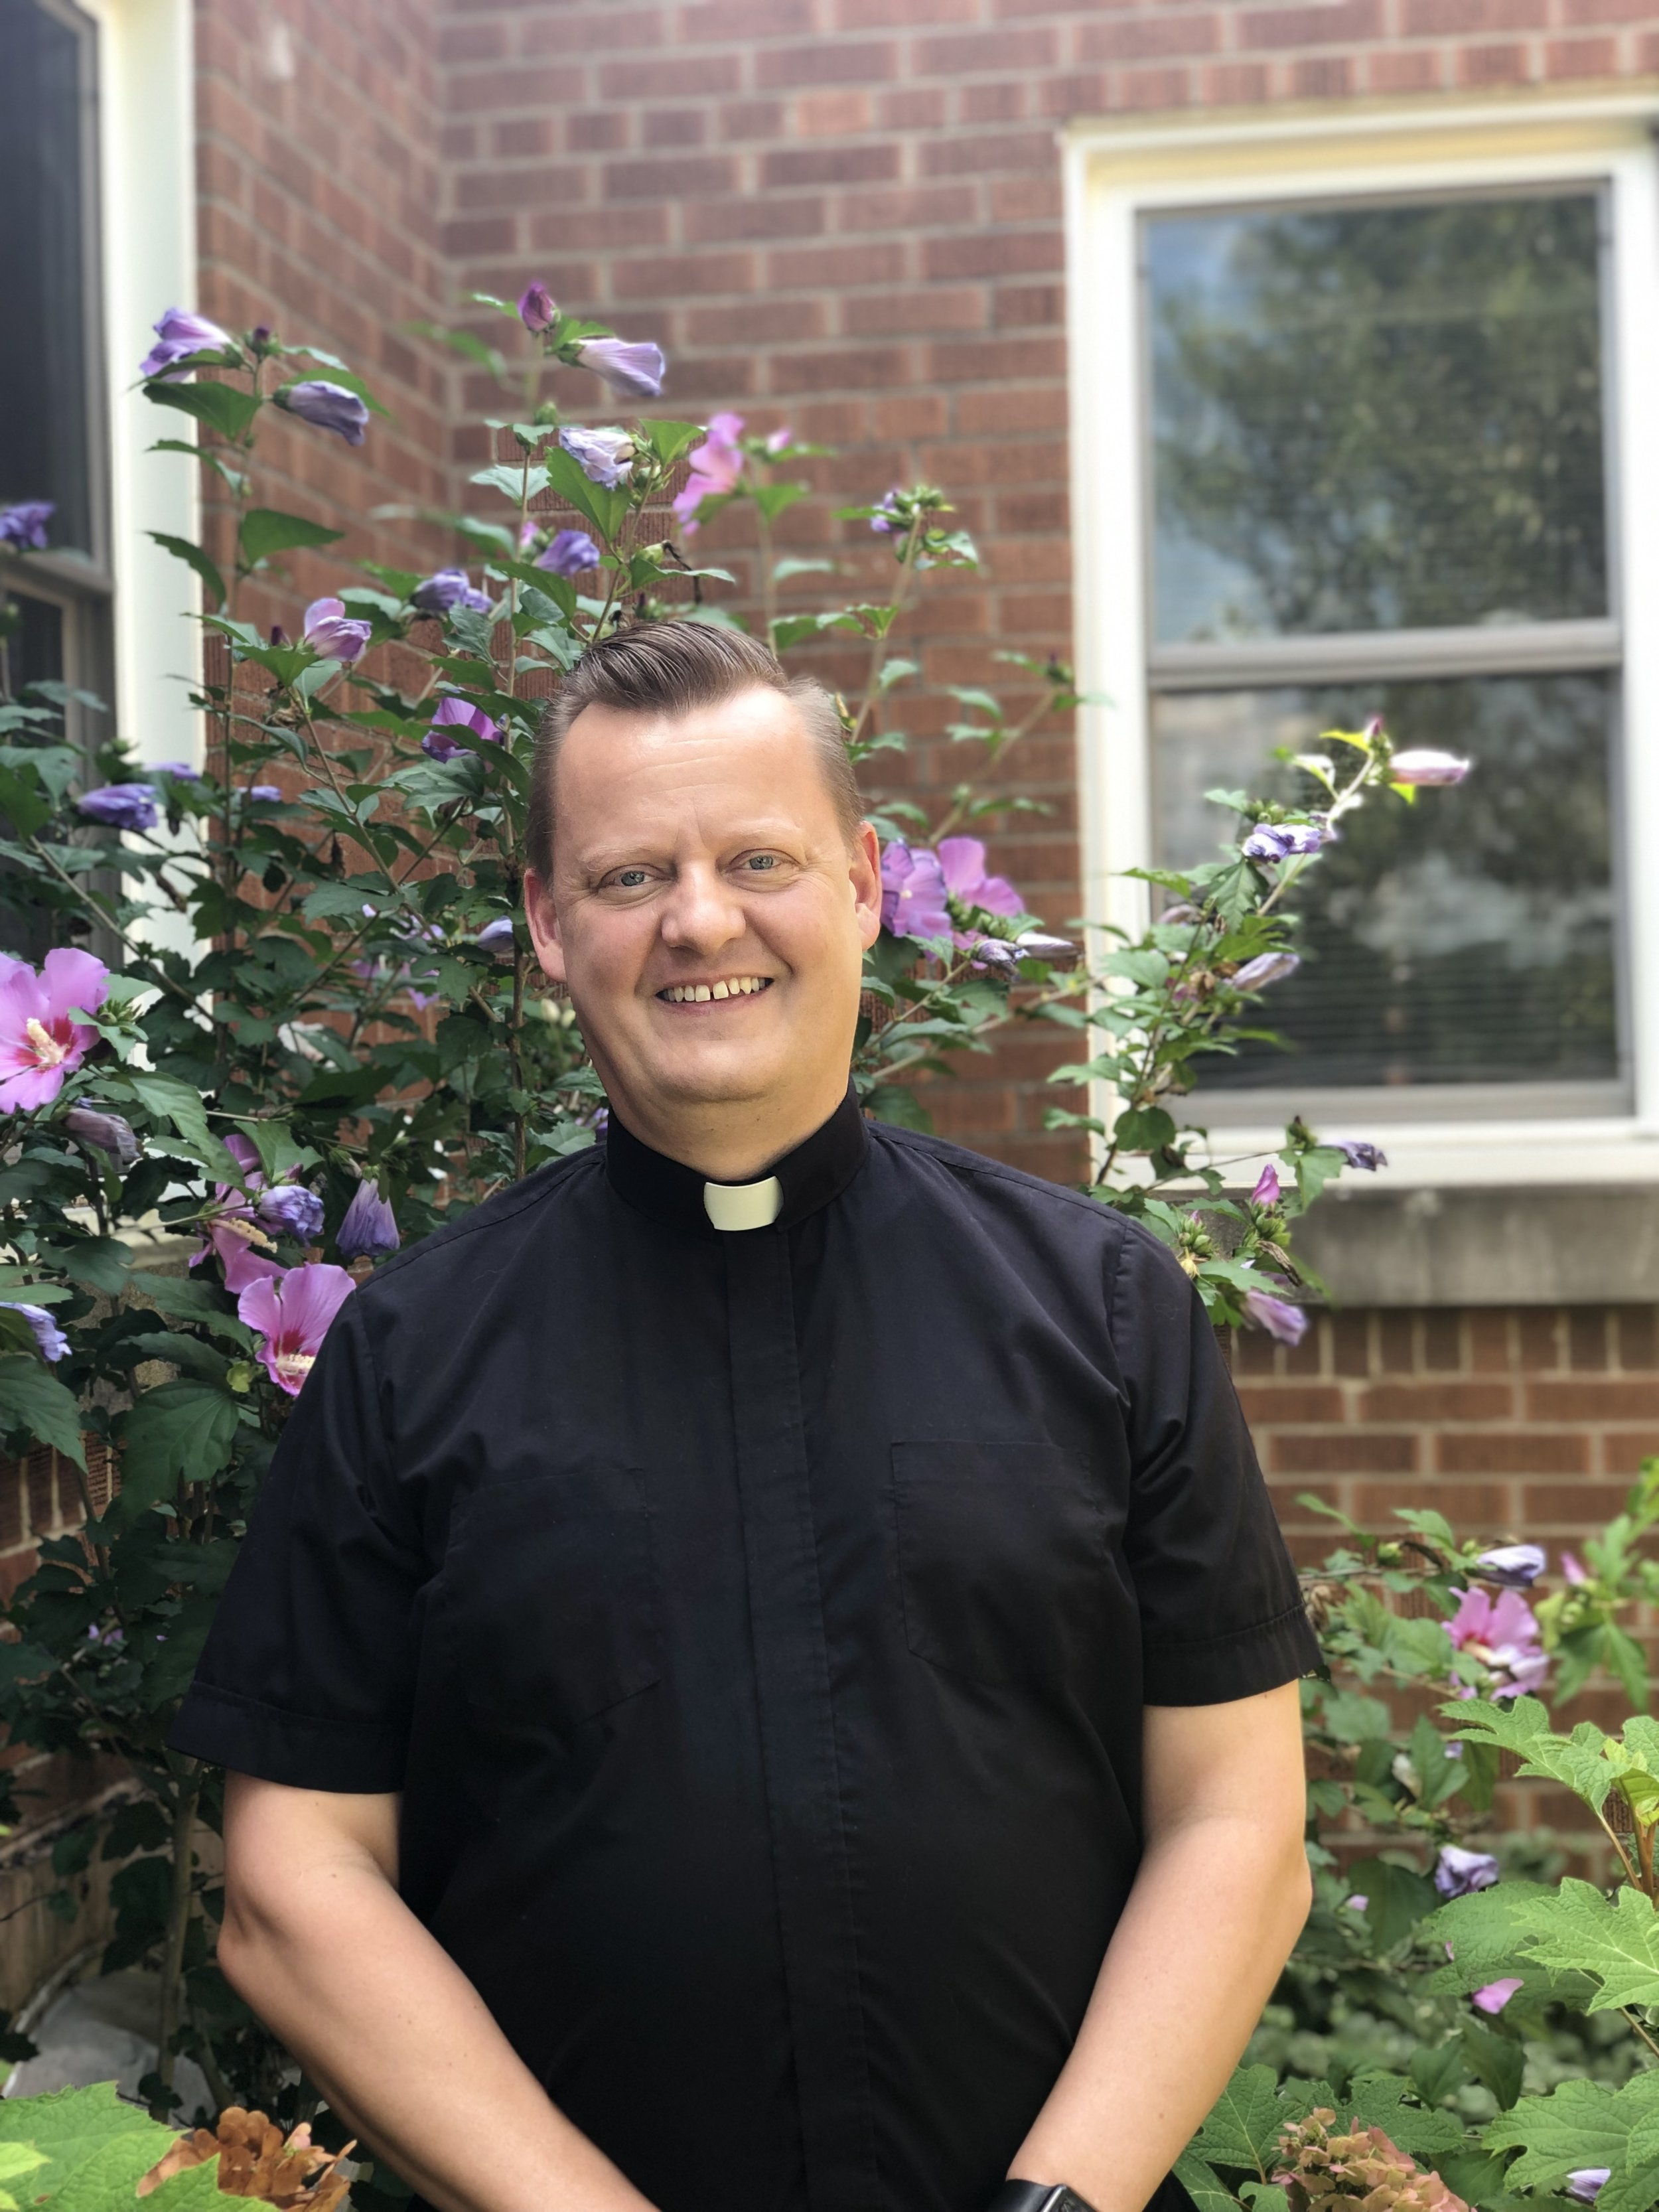 Fr. David Kime: - PastorVocations Director for Diocese of Gary219-962-8626Email: frkime@gmail.com